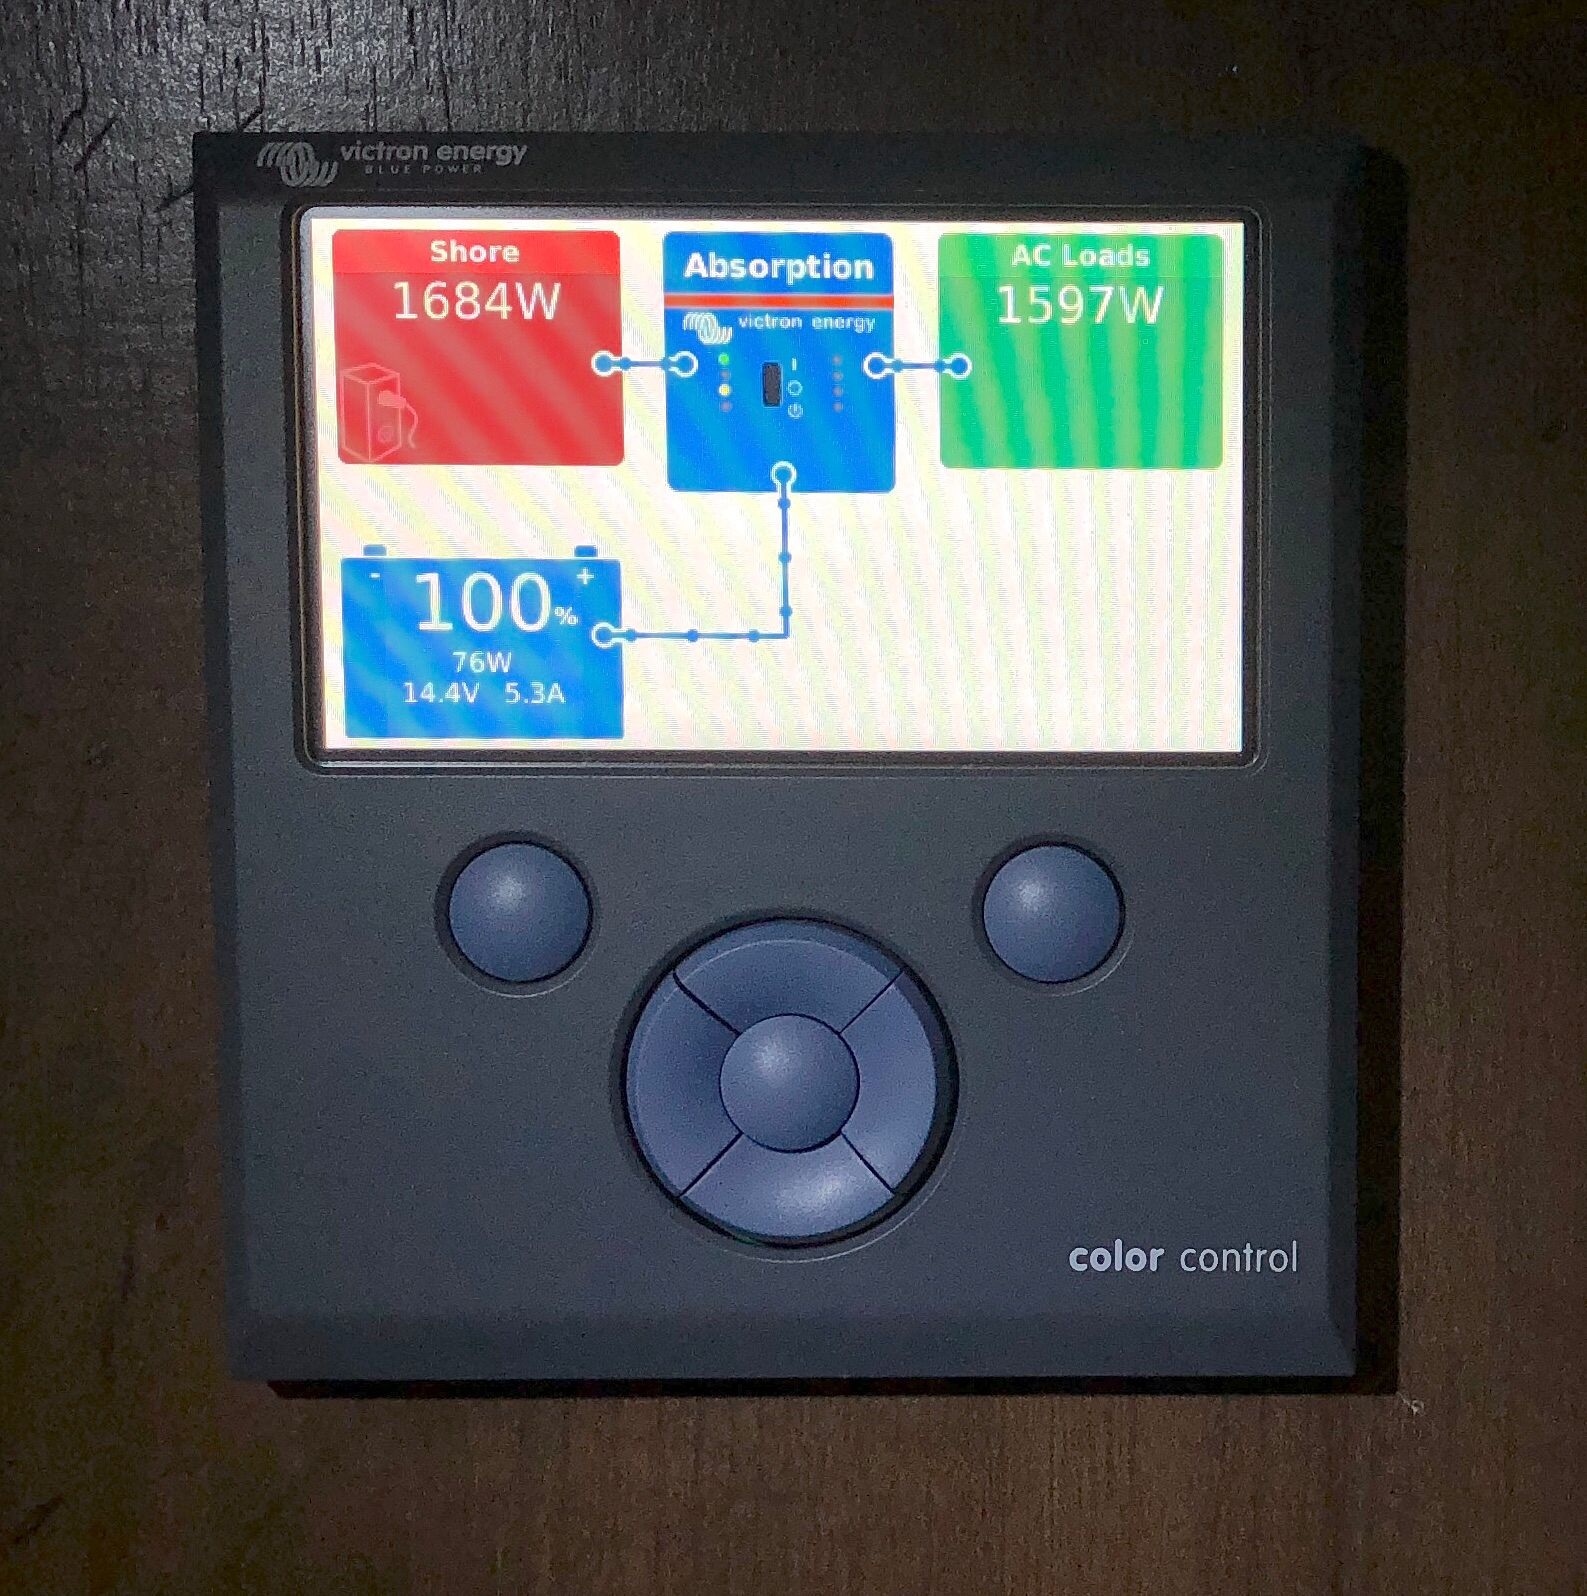 Victron CCGX Control Panel